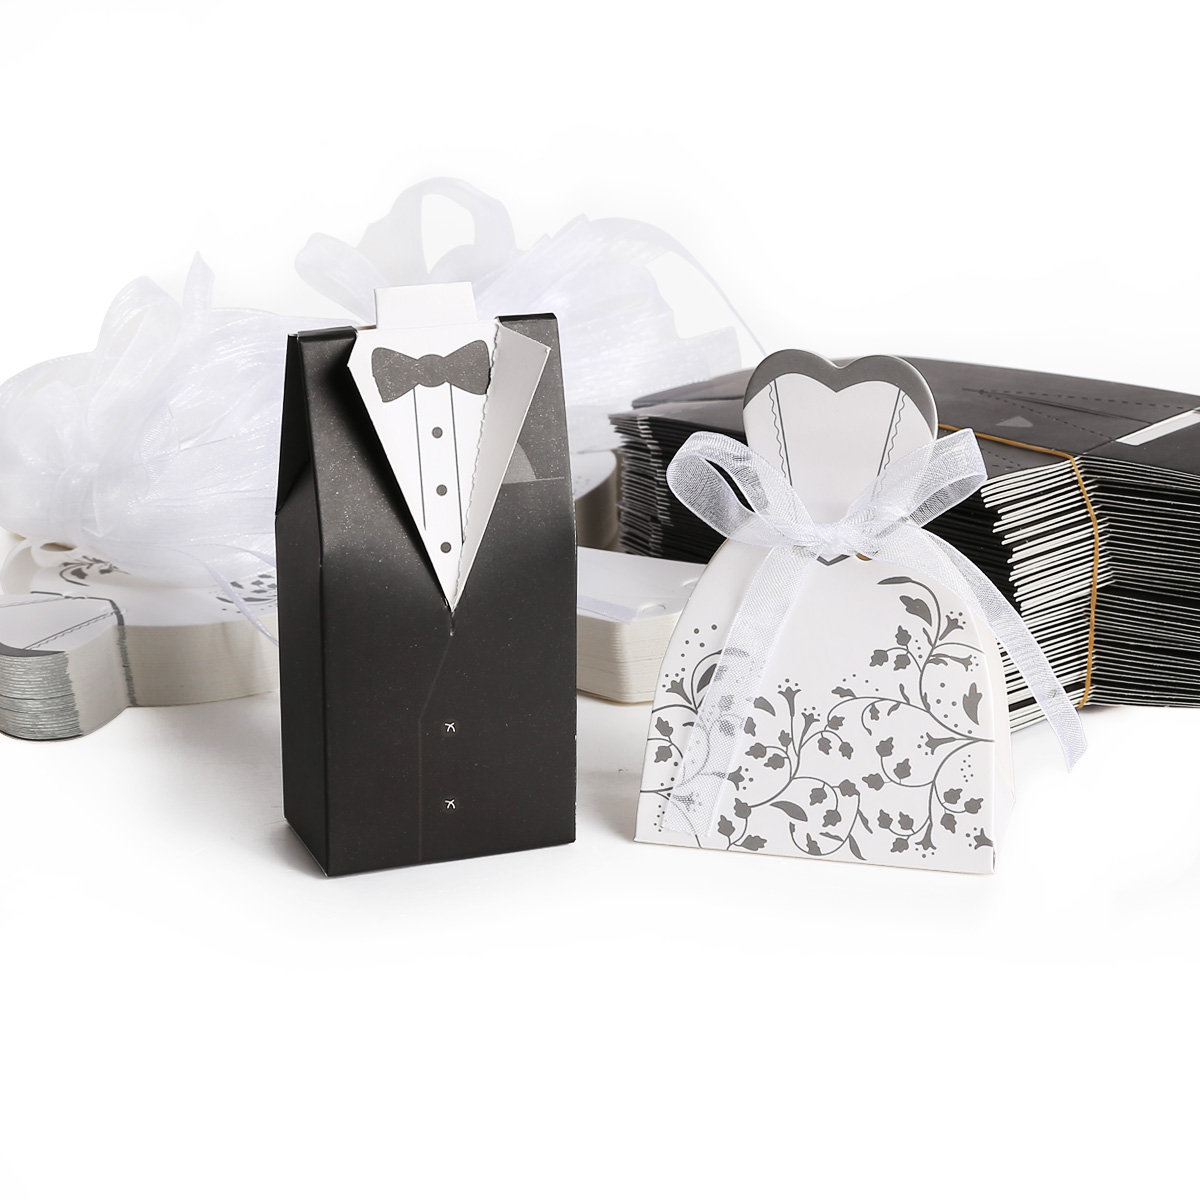 Wedding Gift Baskets For Bride And Groom Australia : 50/100 Pairs Tuxedo Dress Bride and Groom Wedding Cake Candy Favor ...